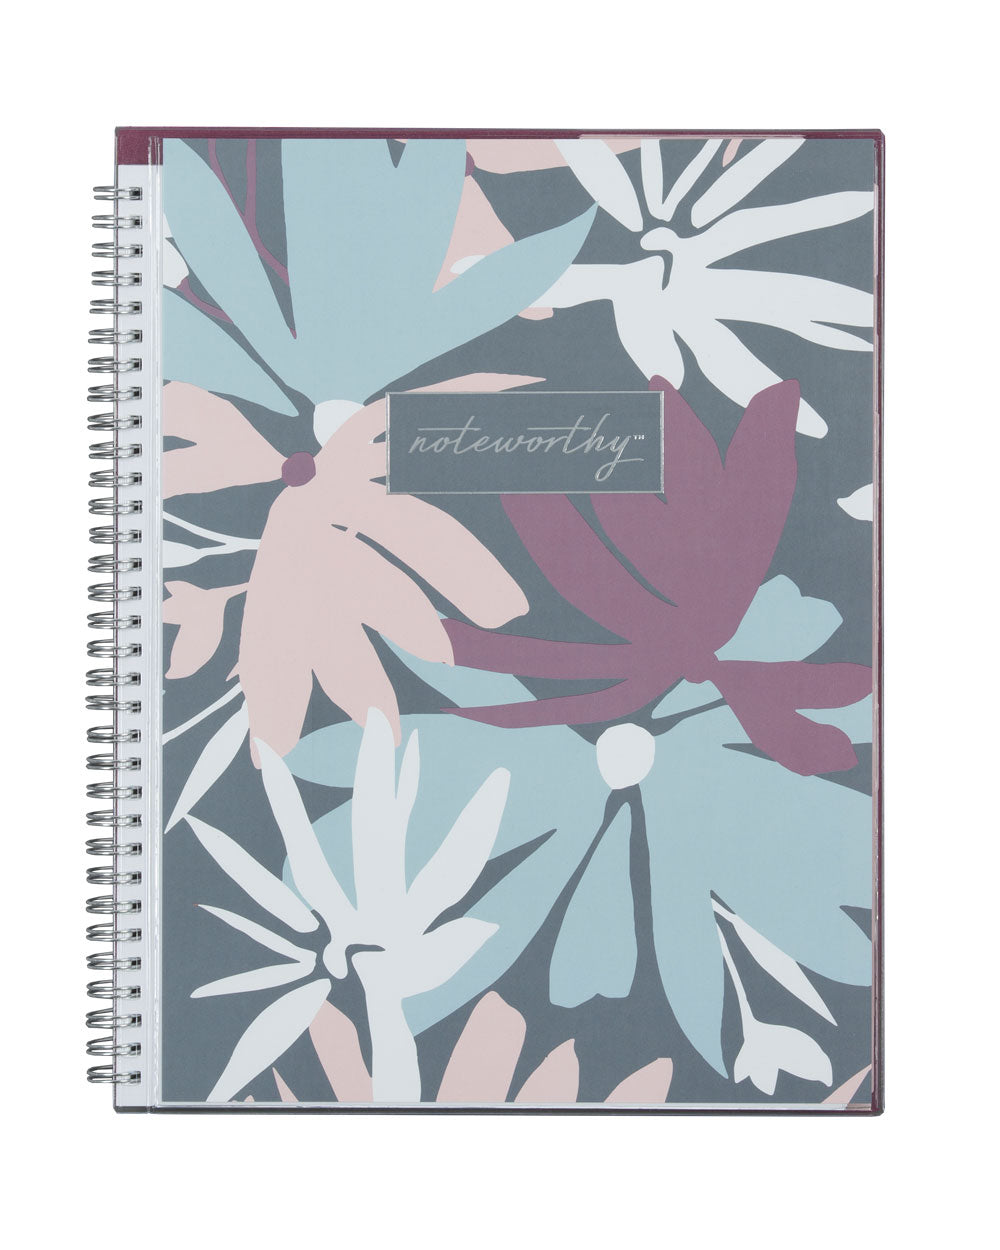 Calendario 202018.Blue Sky New 2019 2020 Premium Daily Weekly And Monthly Planners